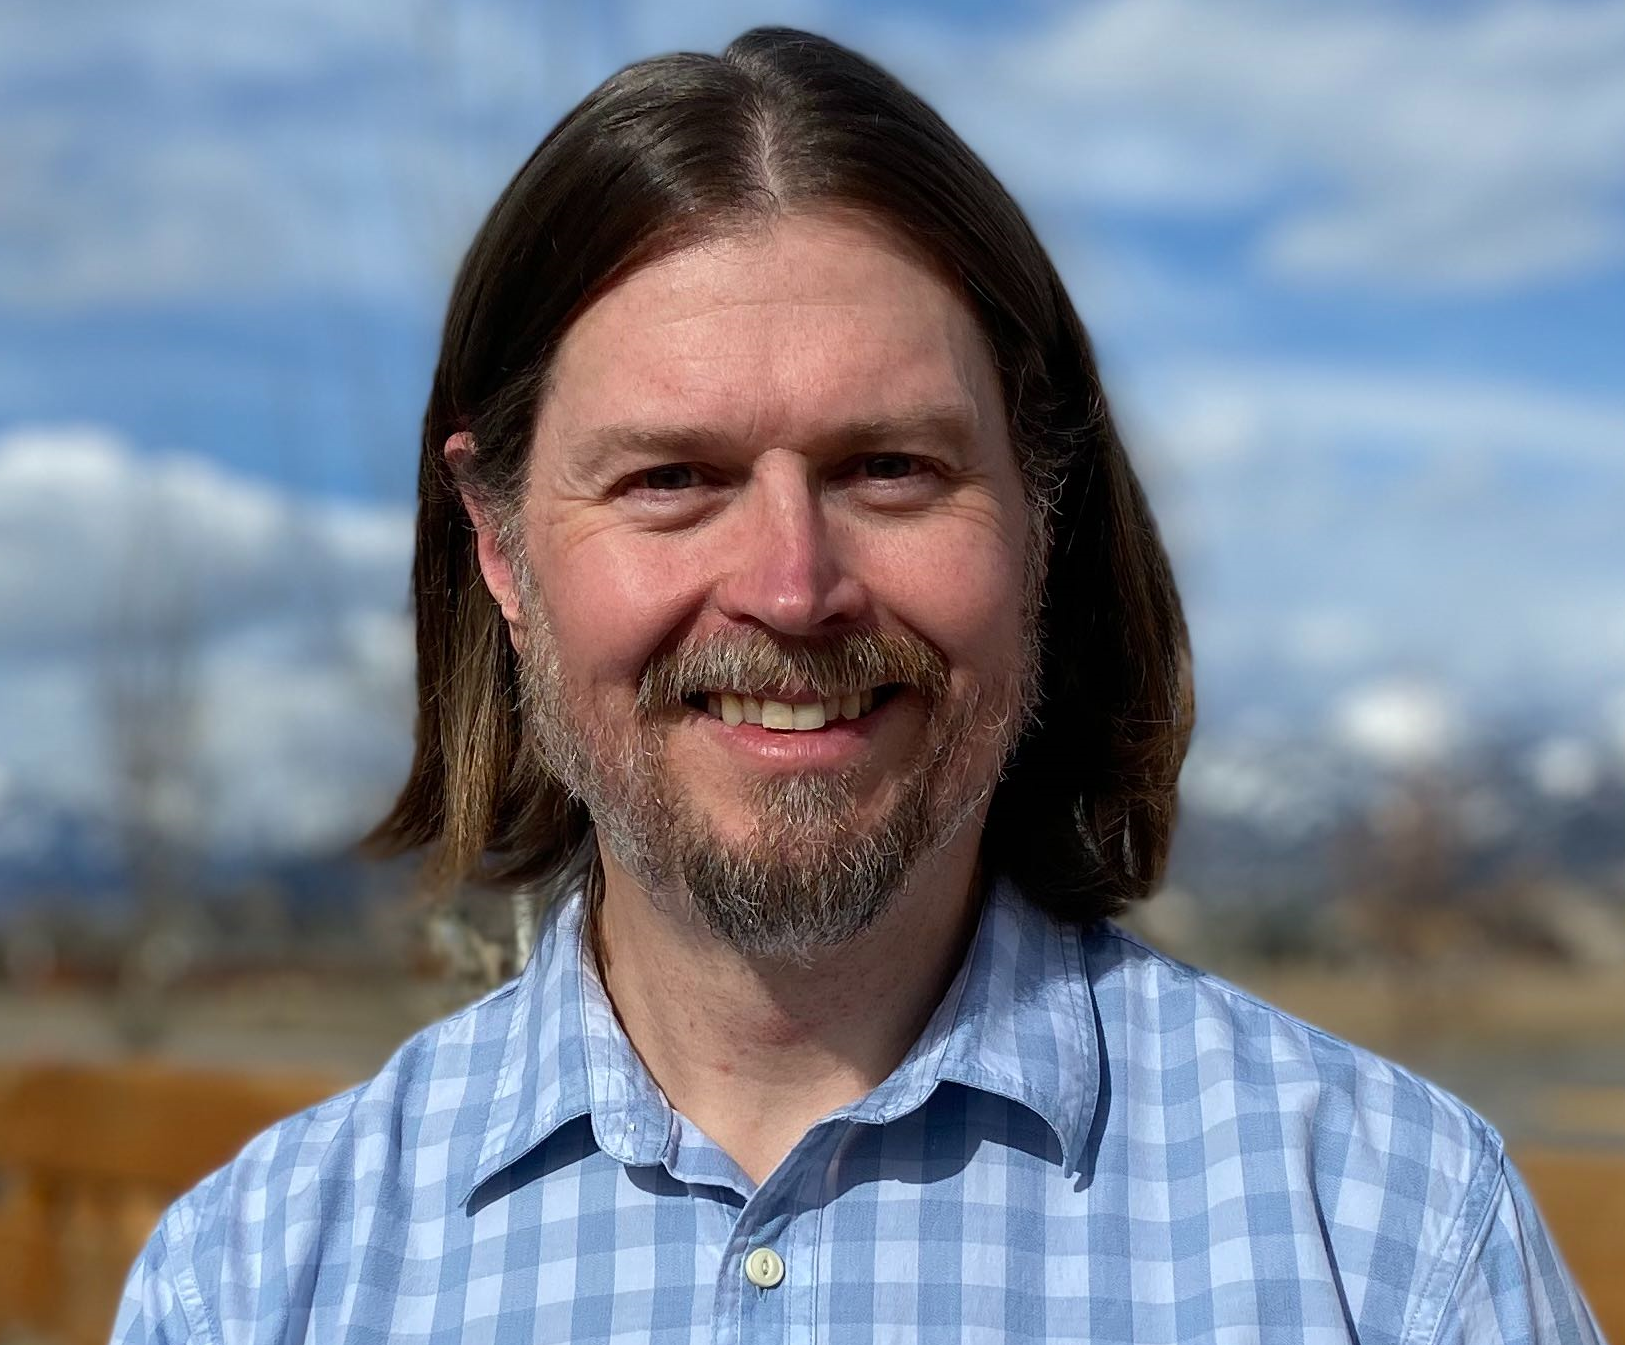 Dave Langer in the instructor for Dave on Data online courses